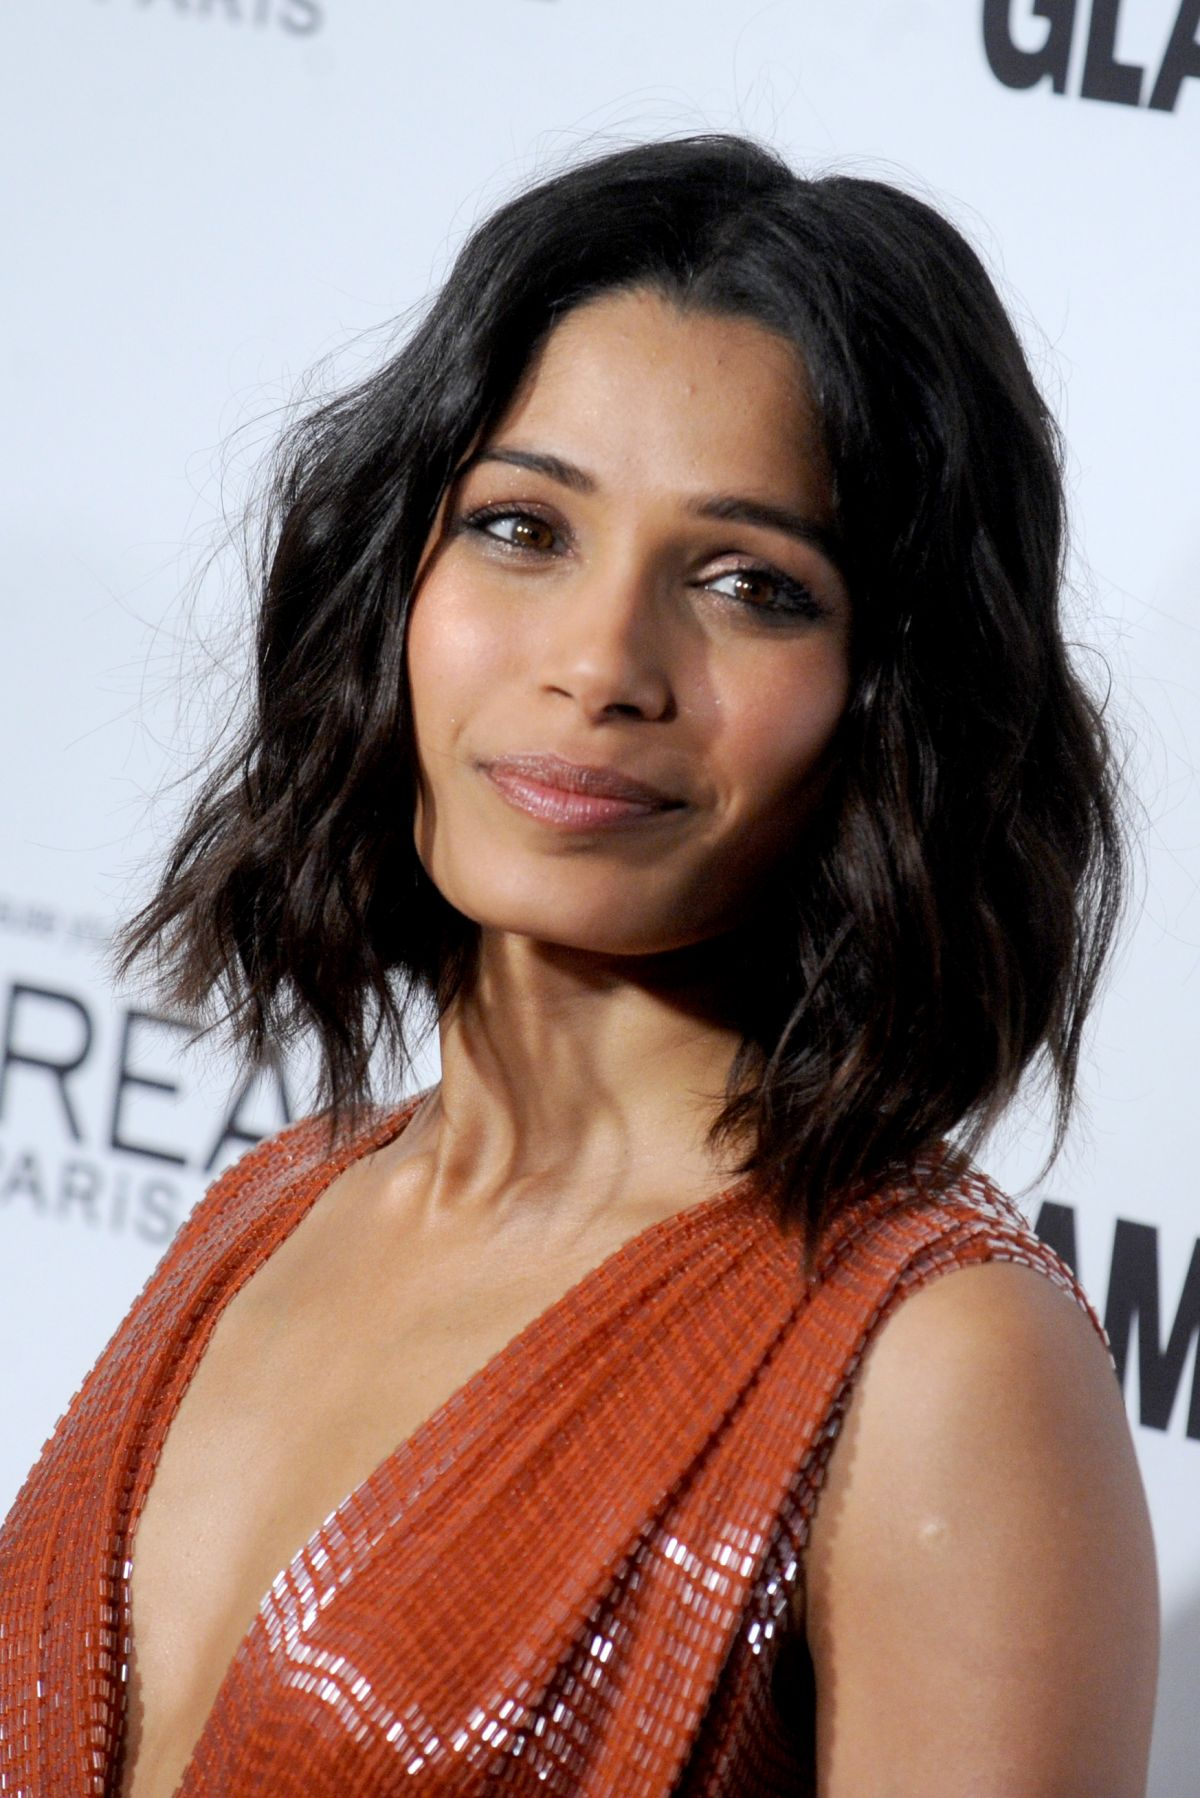 FREIDA PINTO at Glamour Women of the Year 2014 Awards in New York - HawtCelebs - HawtCelebs Freida Pinto